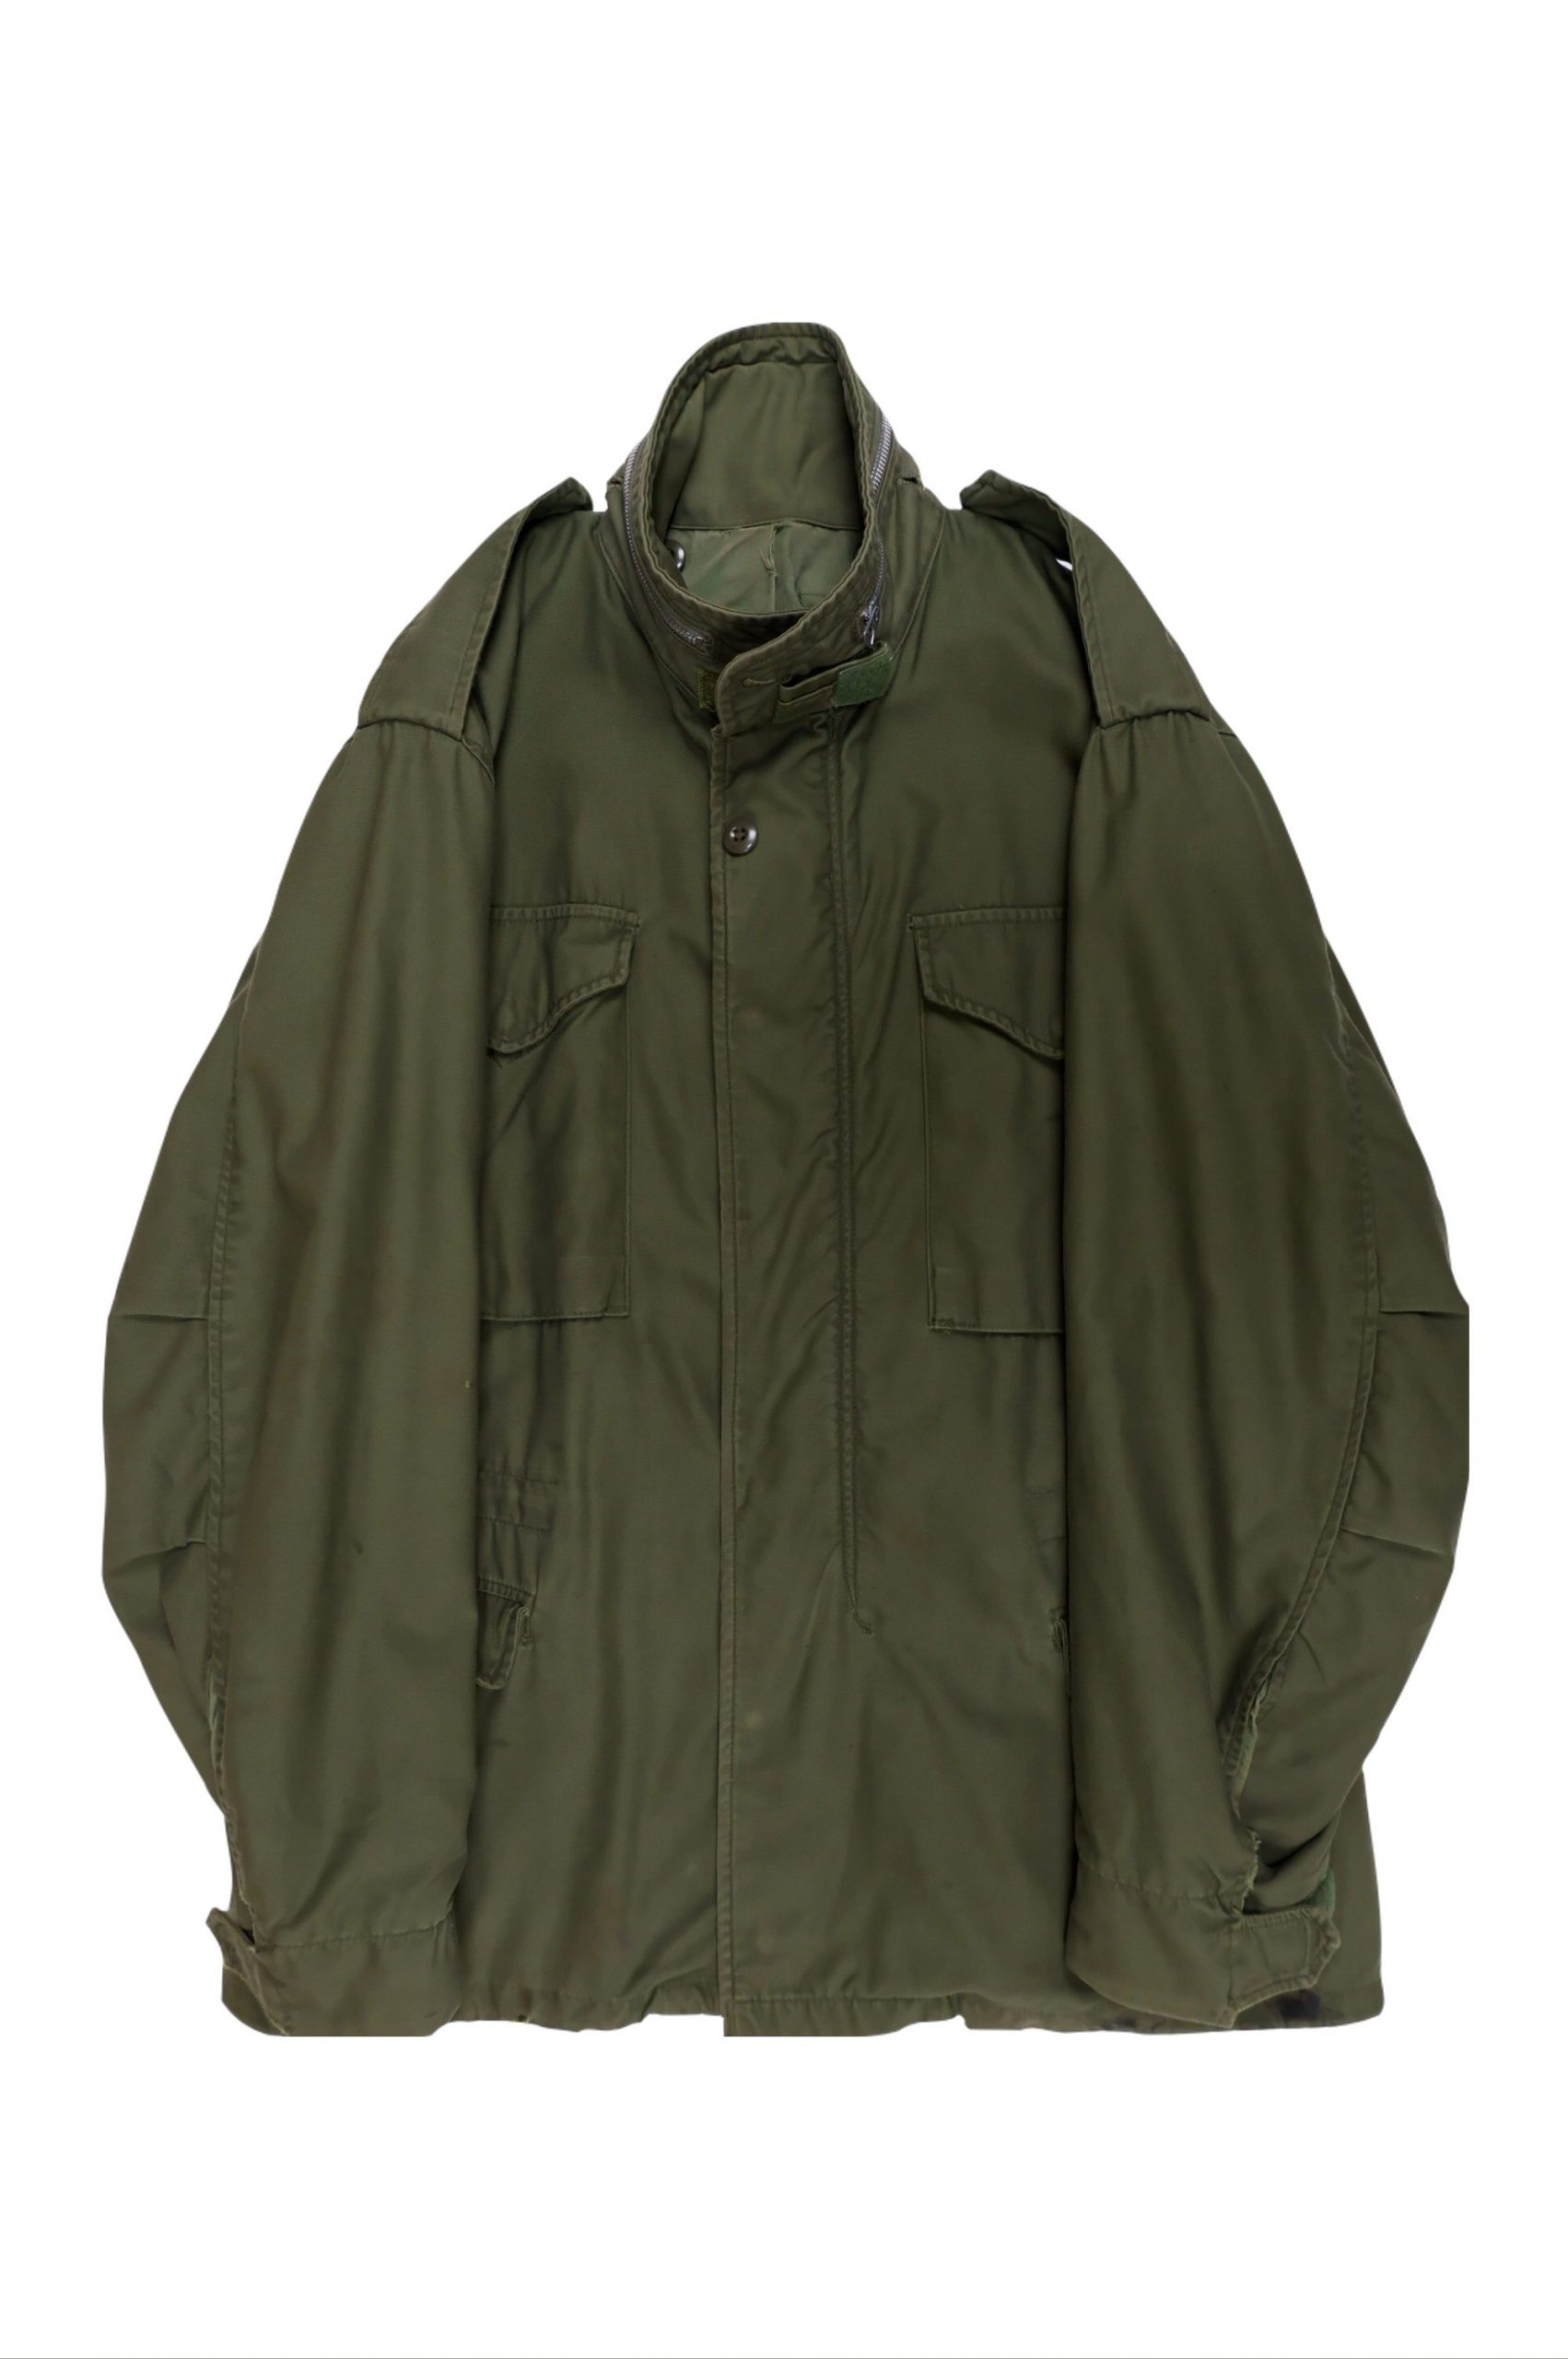 M65 MILITARY JACKET 2nd model